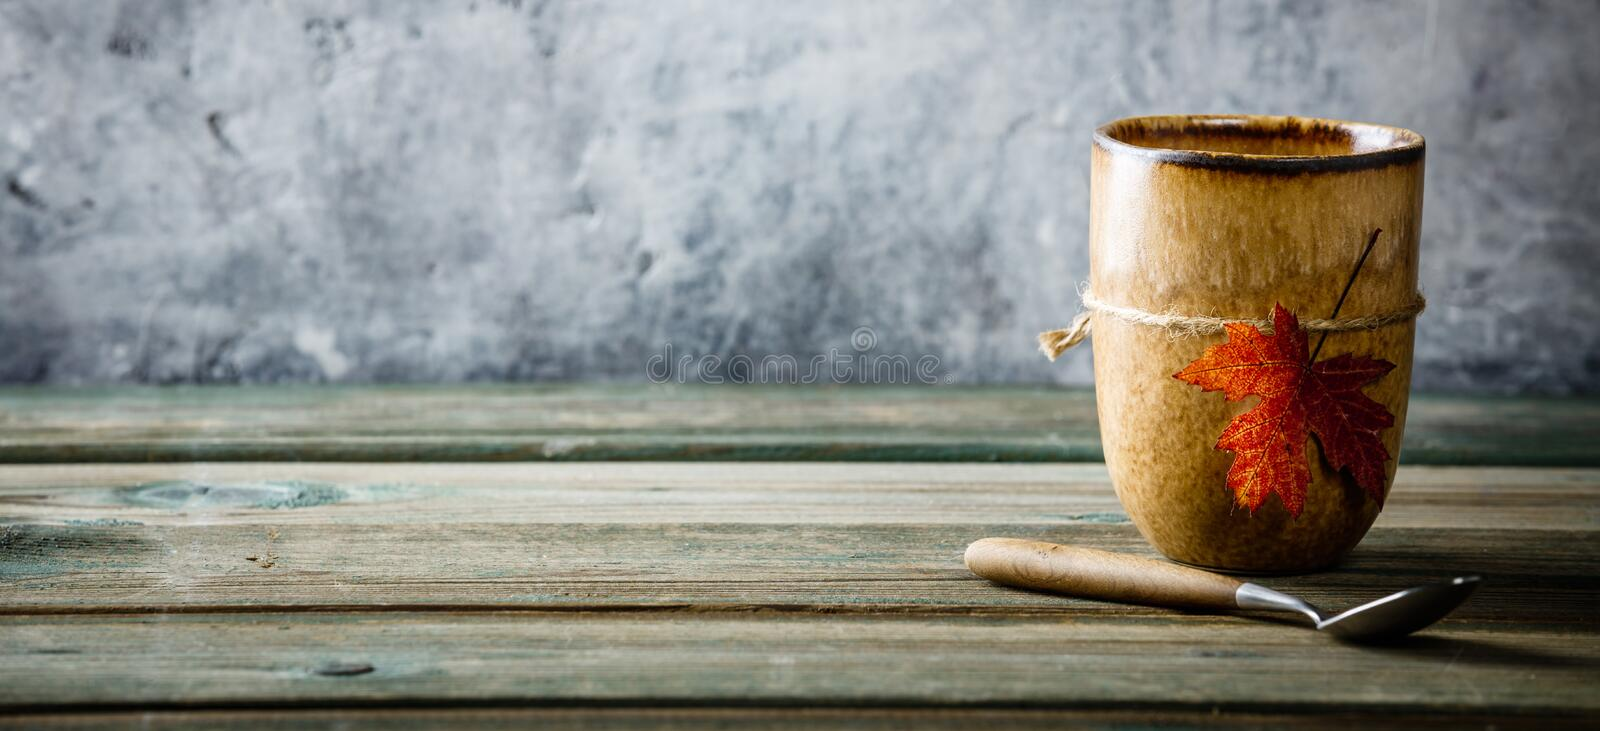 Cup of tea or coffee with autumn leaf royalty free stock image